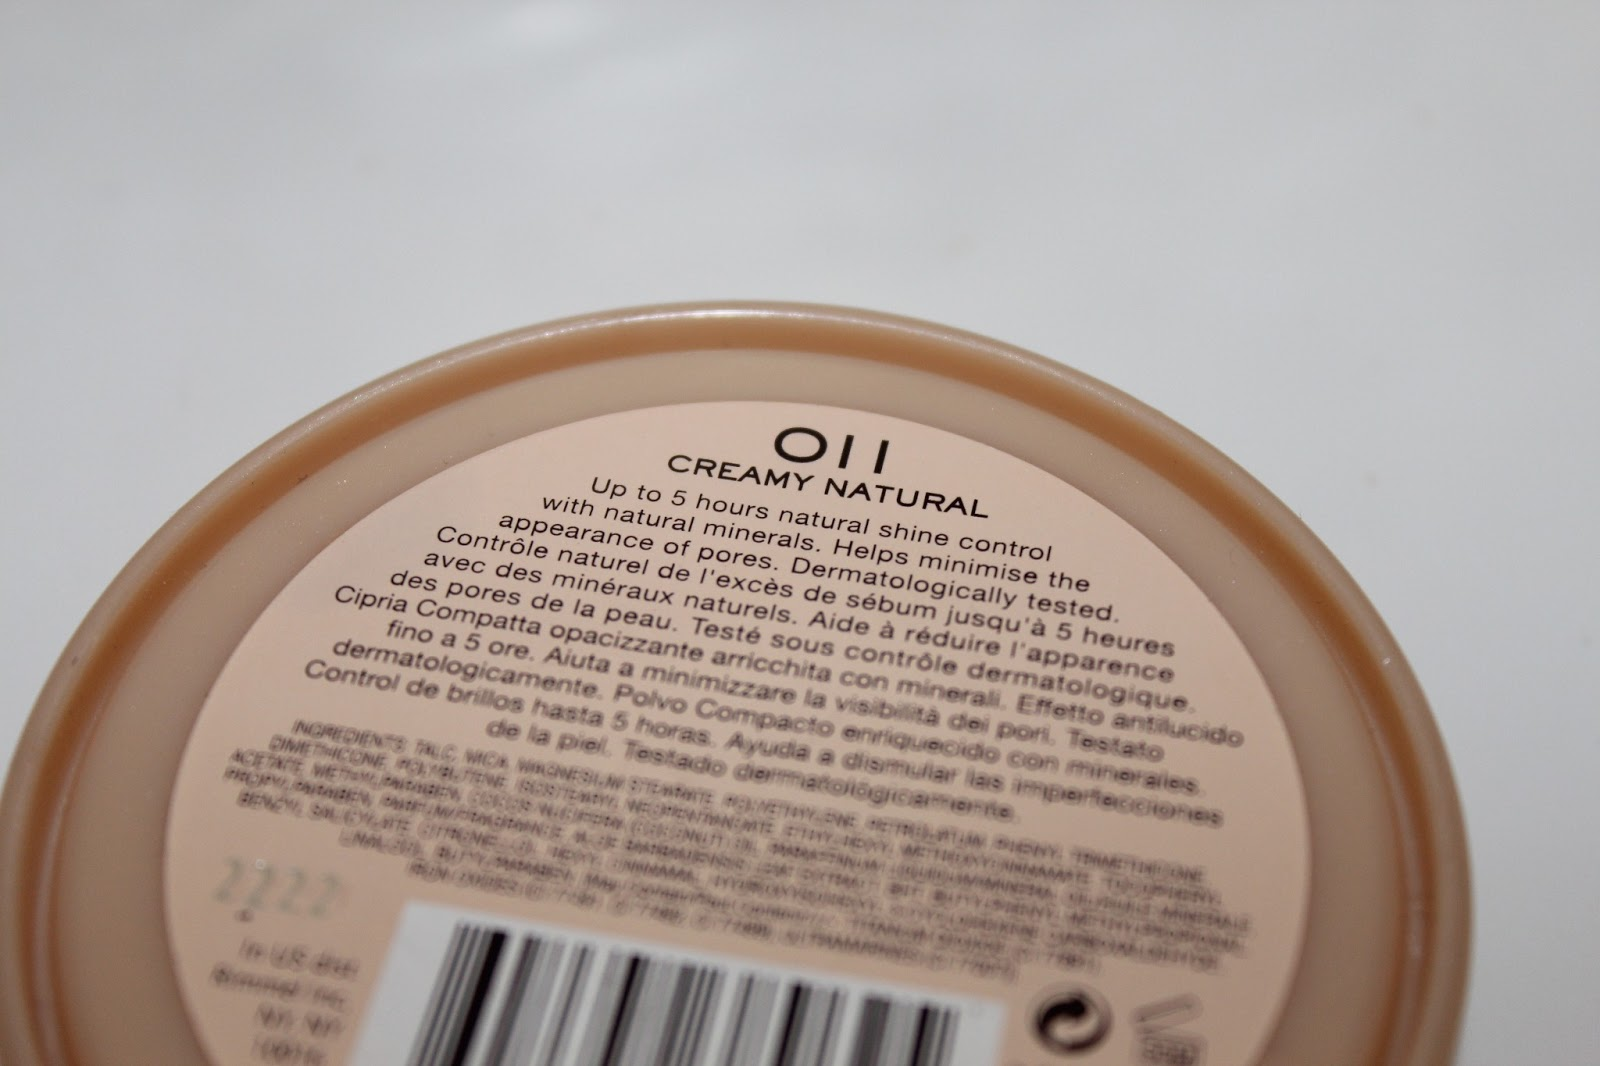 Gigis Kitchen My Blog On Cooking Makeup Fashion Crafts And Rimmel London Stay Matte Pressed Powder It Smells Exactly Like Baby In Opinion Which Just Makes Me Cough If You Dont The Scent Of